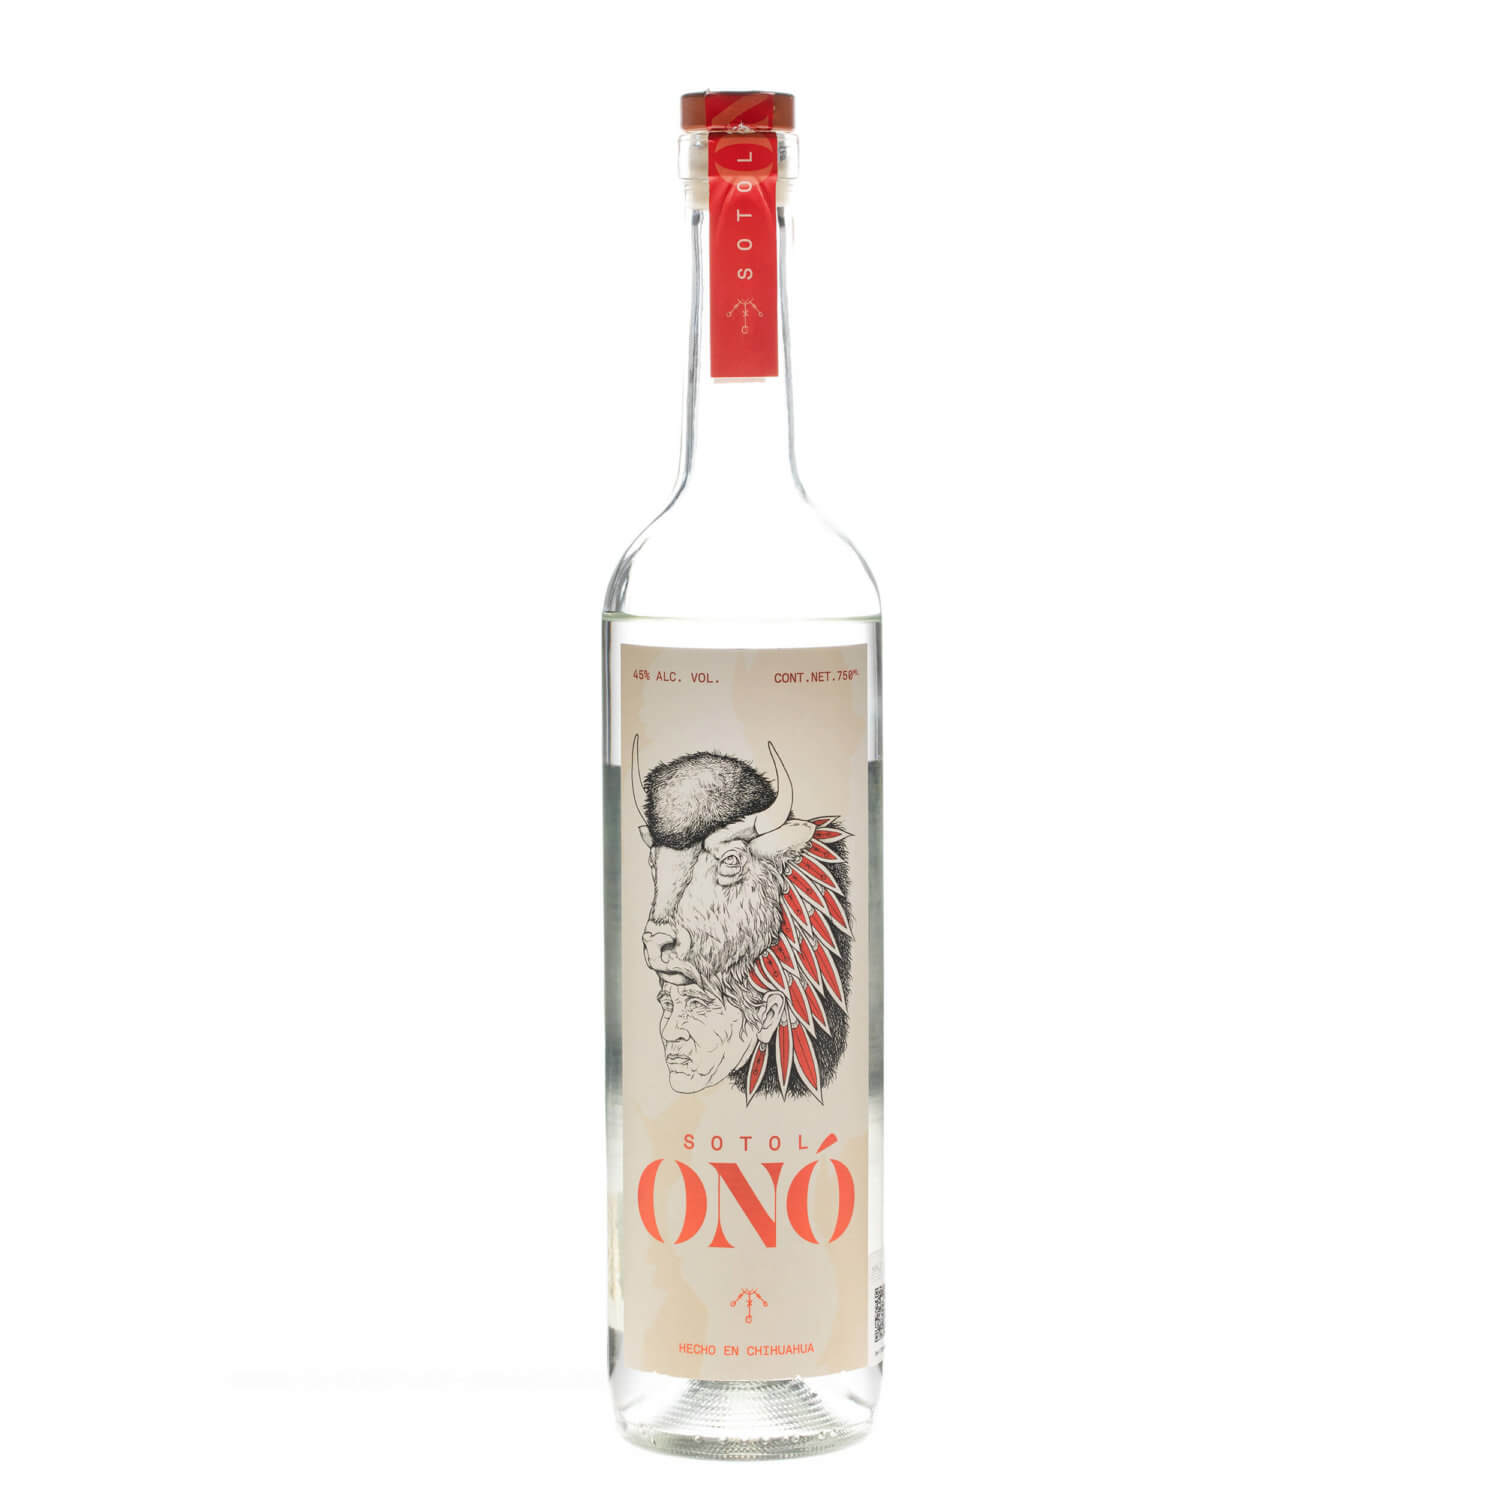 Sotol Ono Front